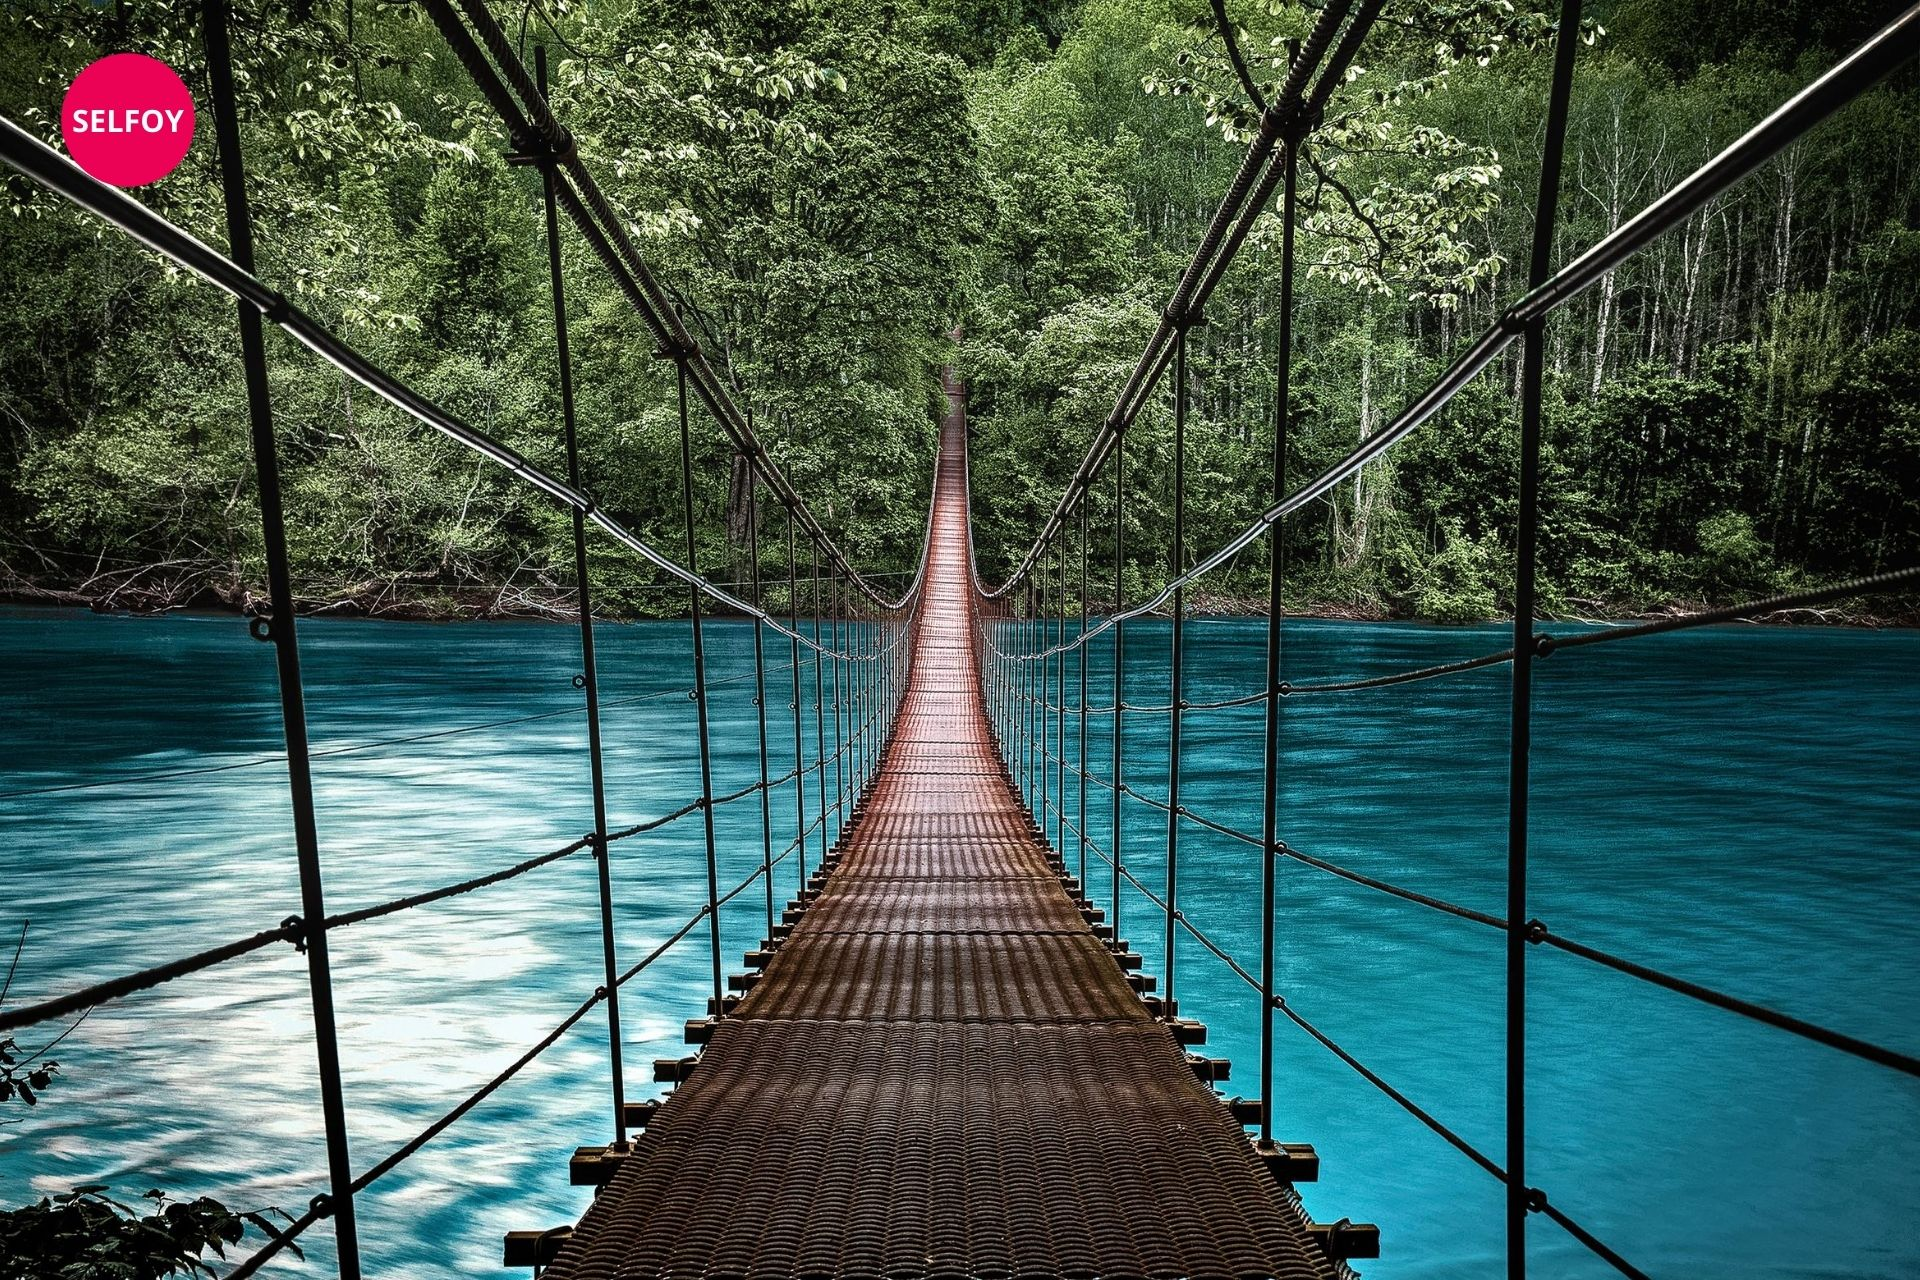 hanging pool in a blue river